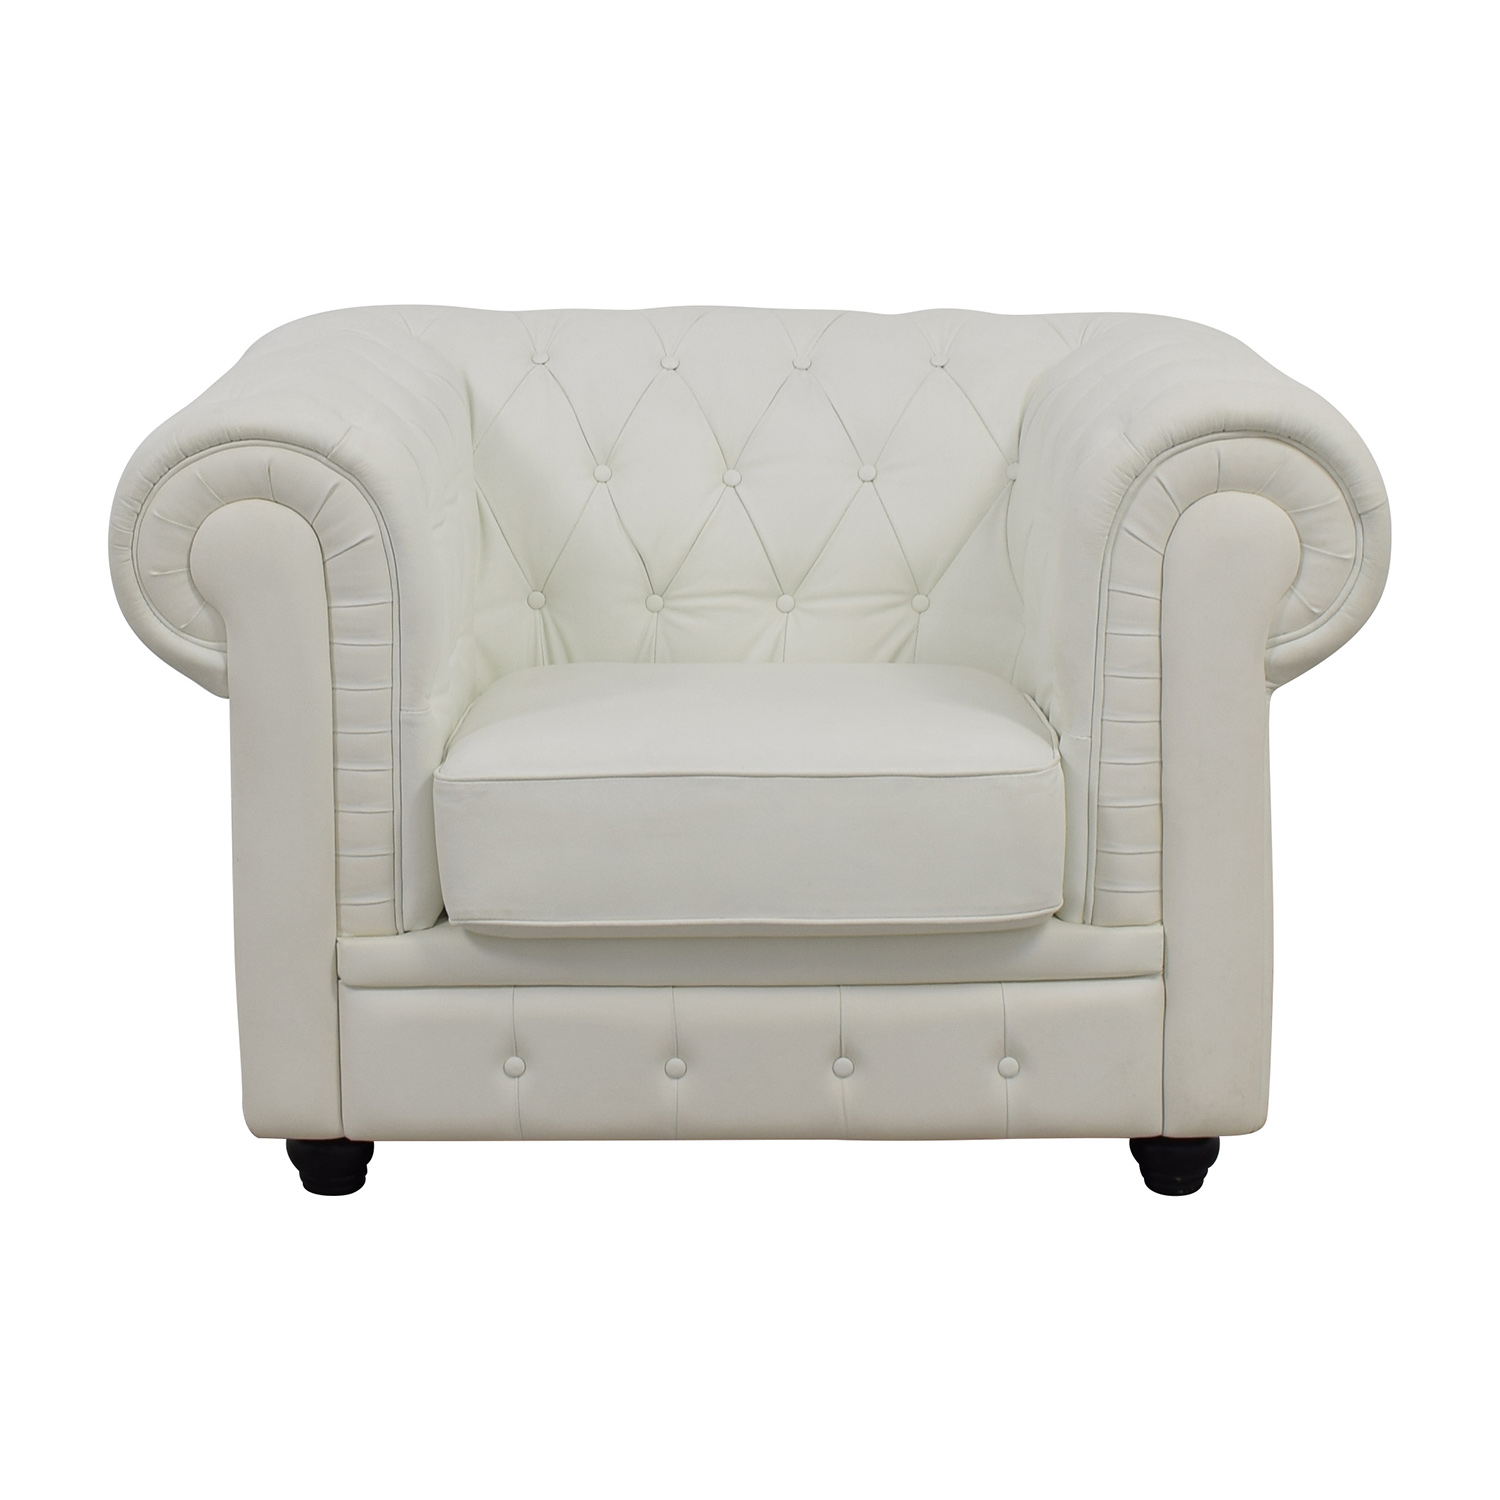 Chesterfield Tufted White Leather Accent Chair used